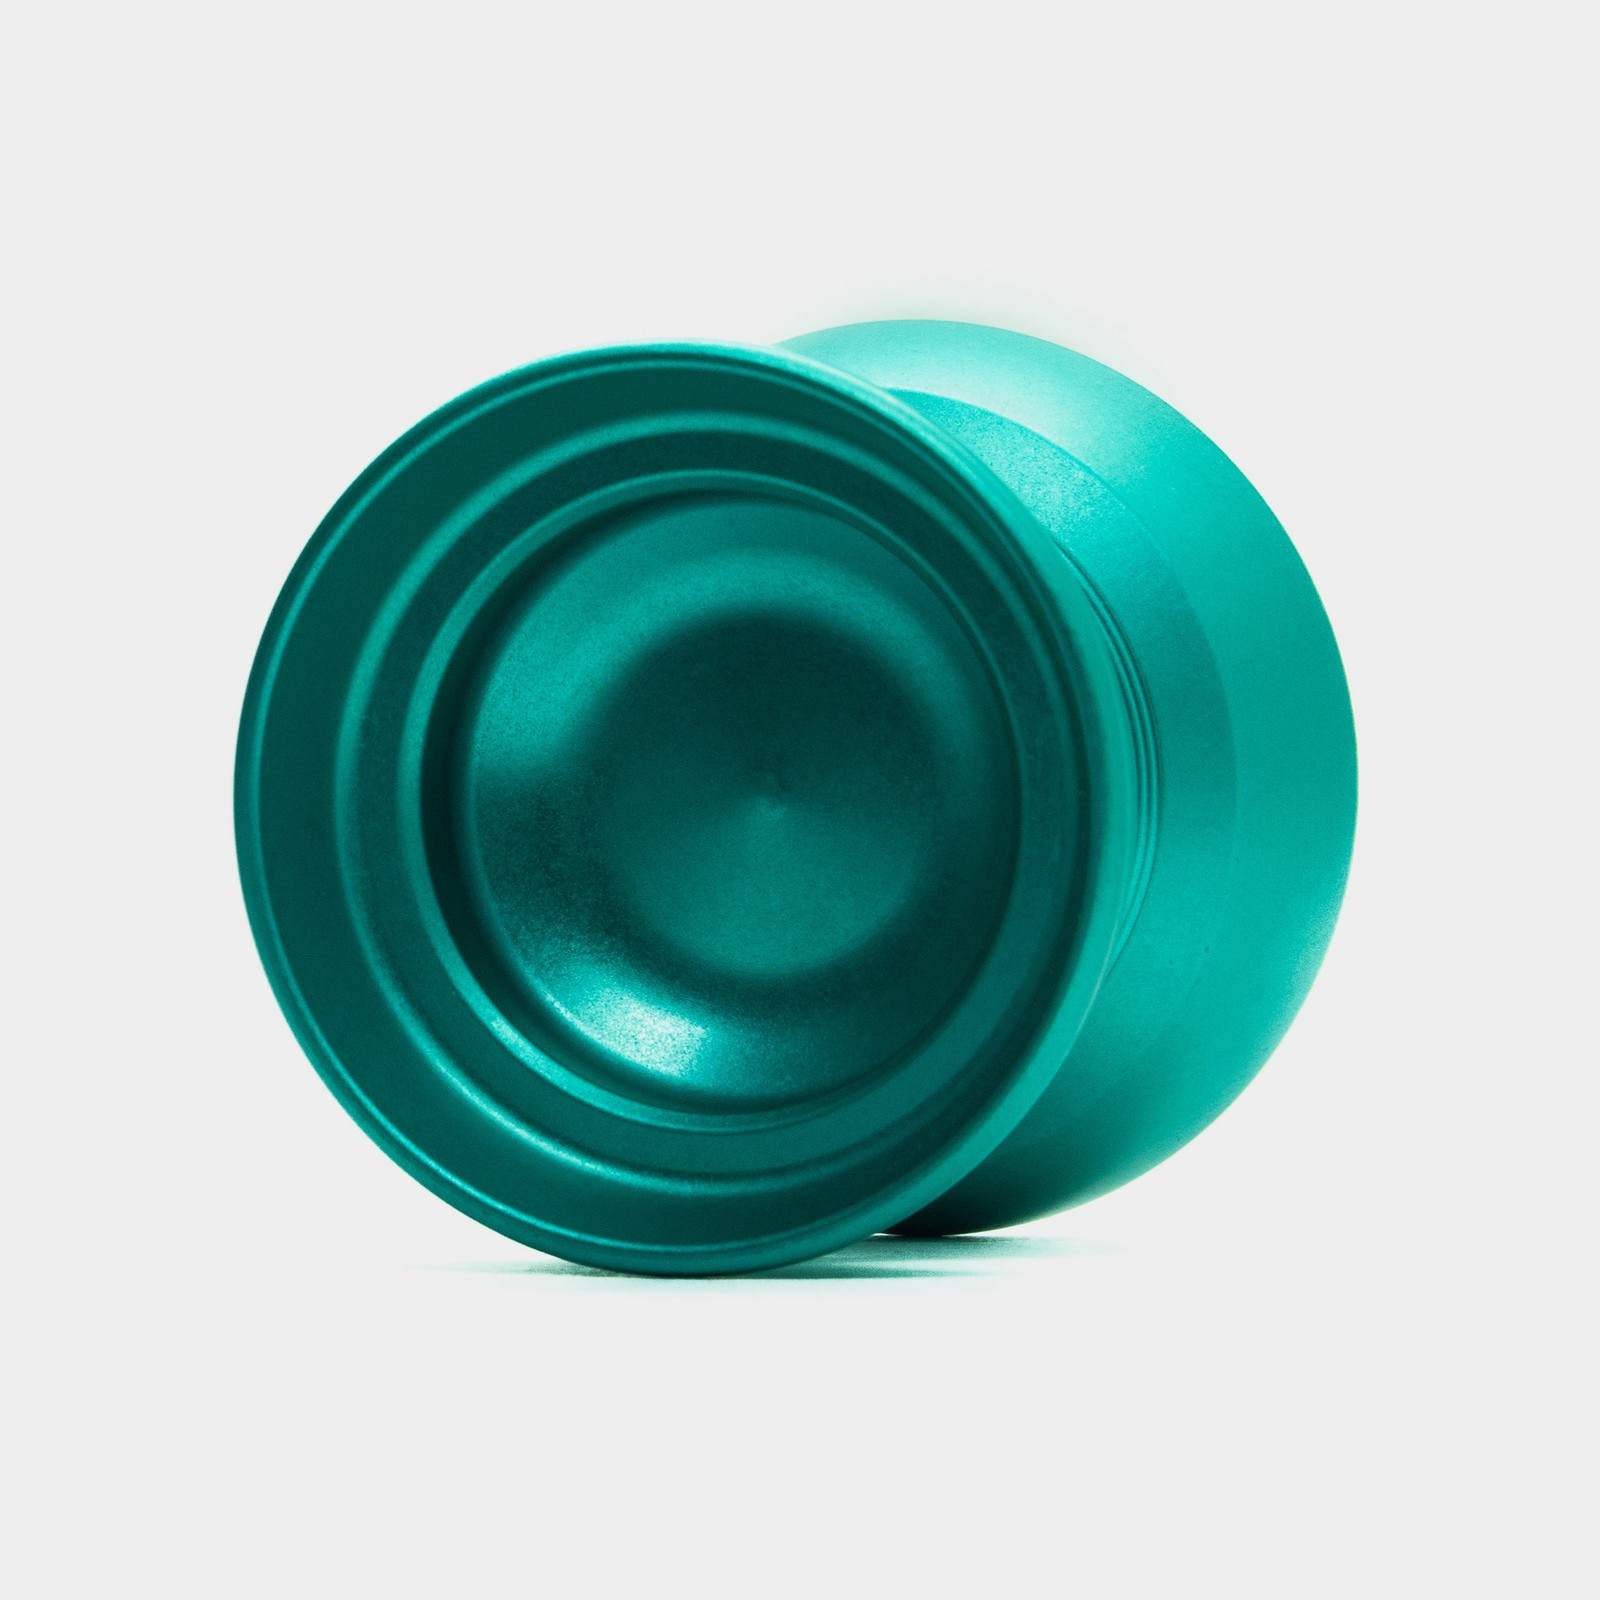 Sugar Glider yo-yo in Teal by One Drop YoYos